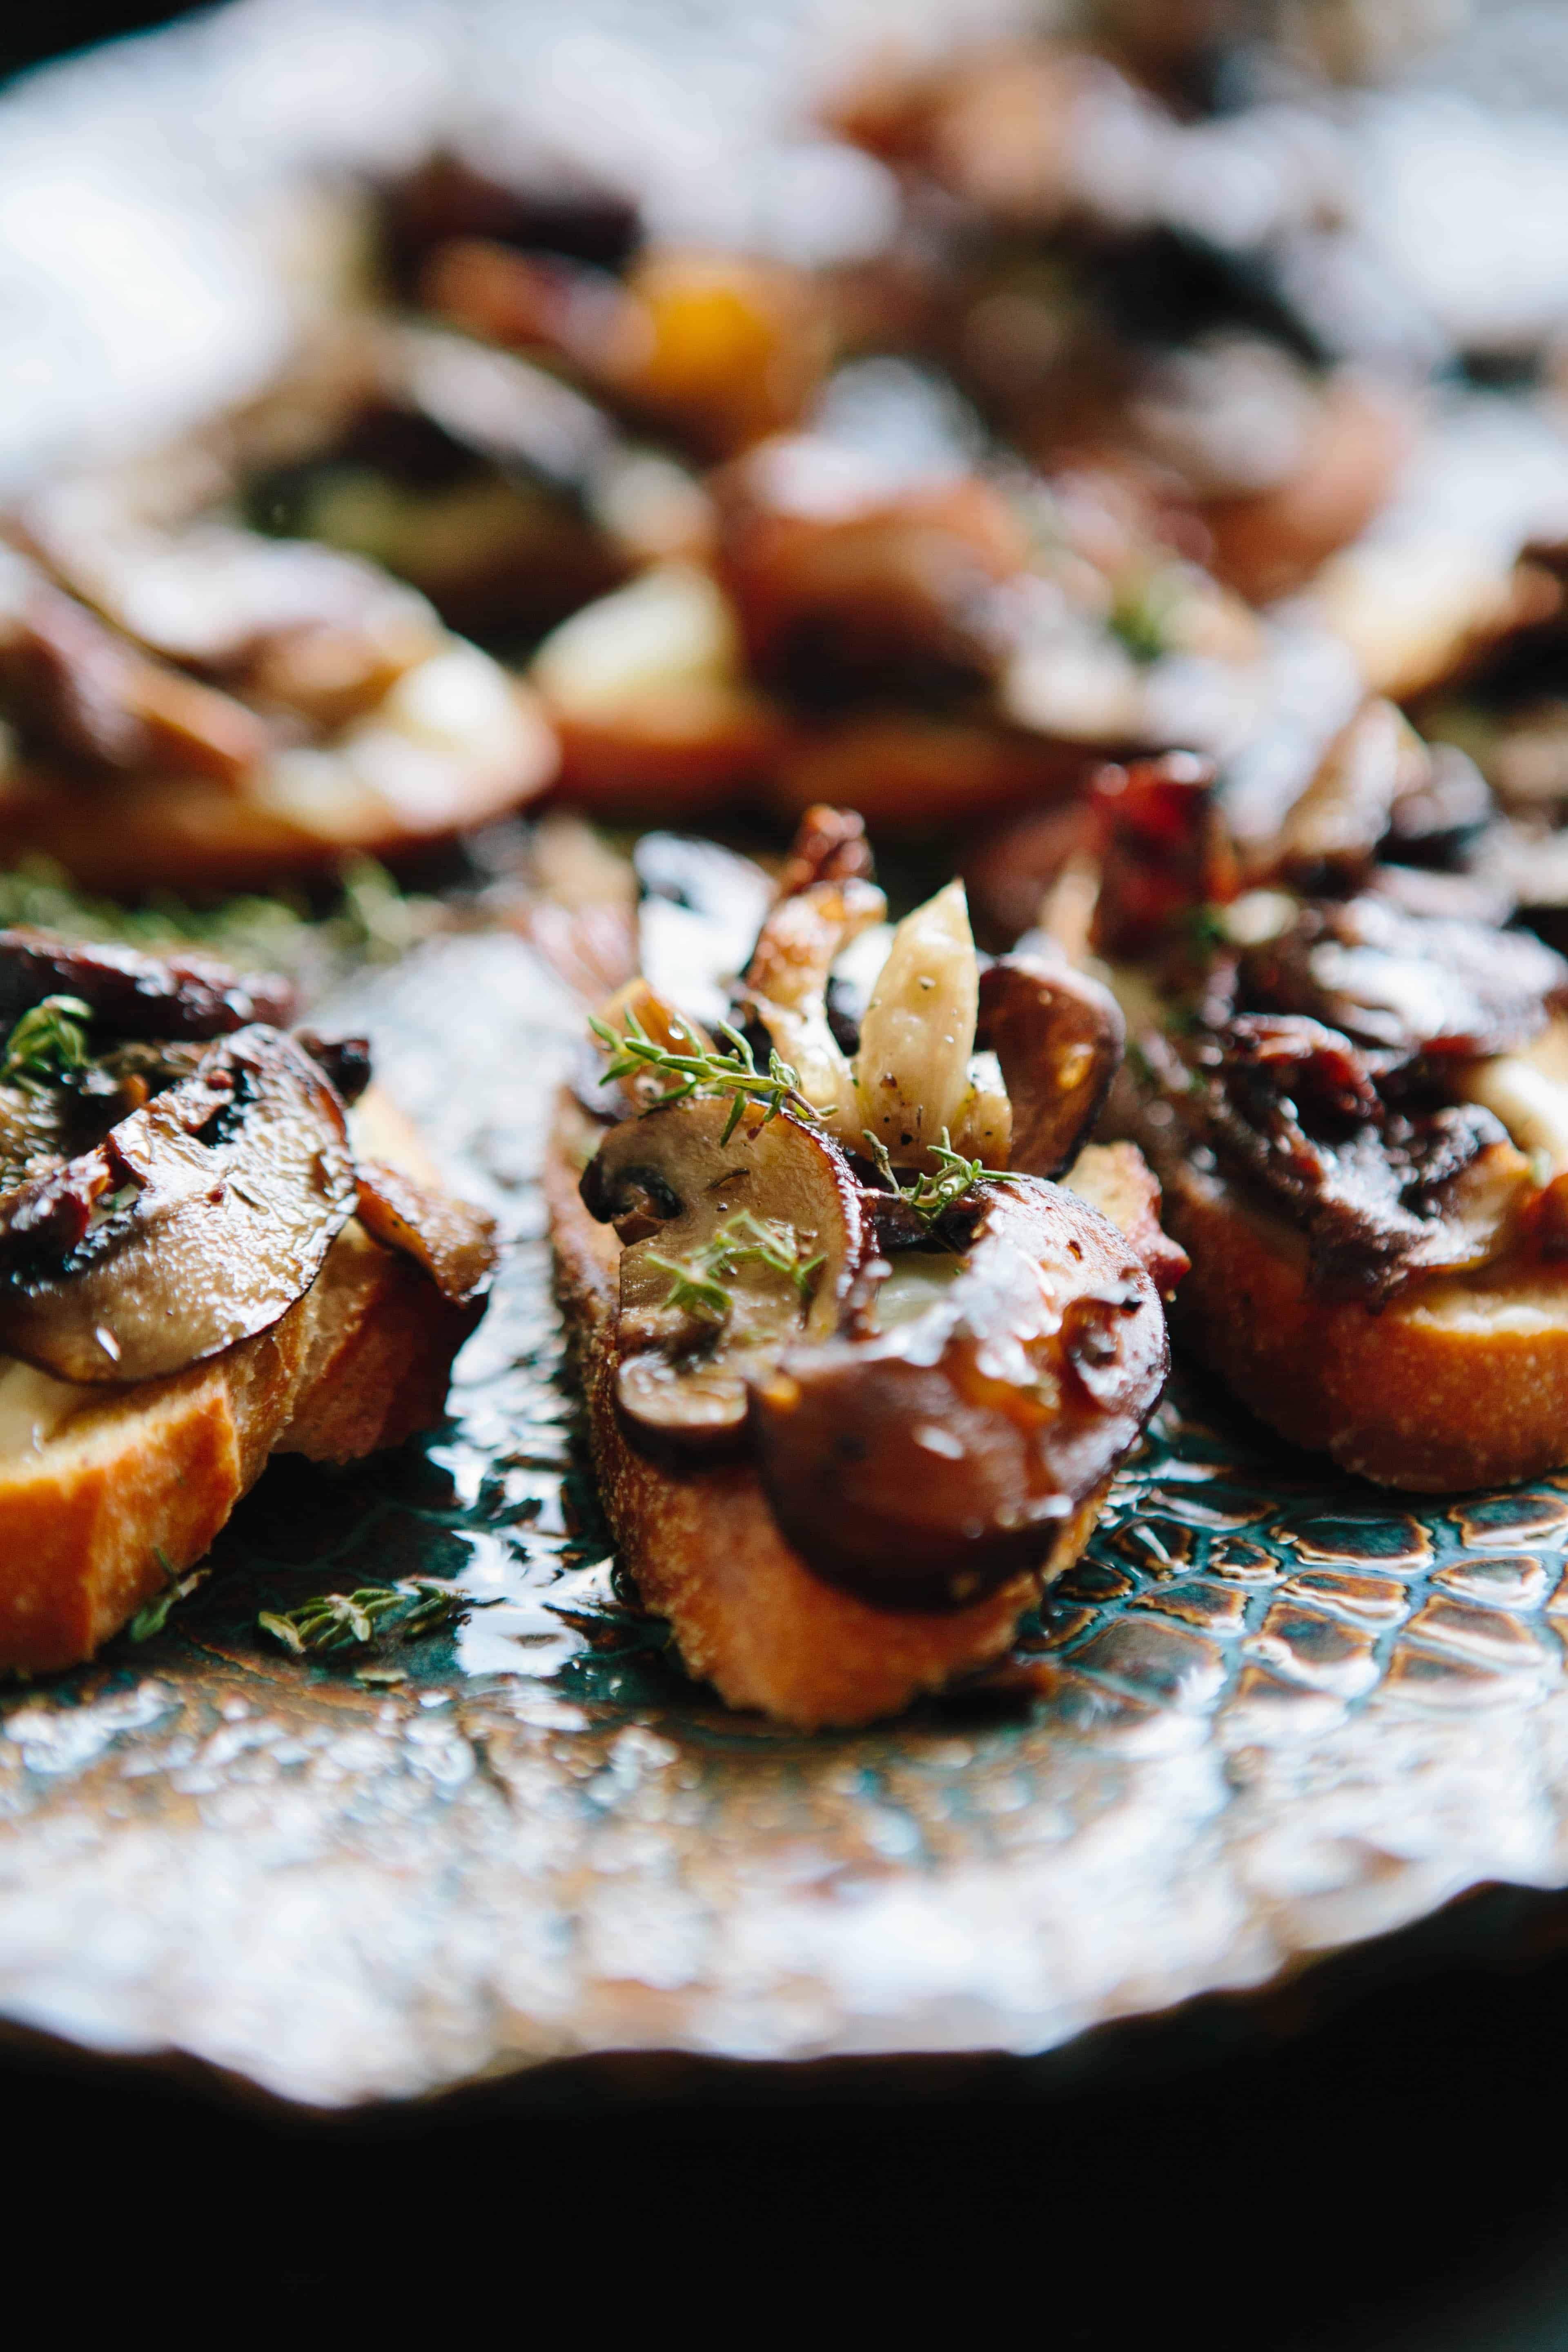 Angled shot of roasted mushroom and cheese crostini on a serving tray.